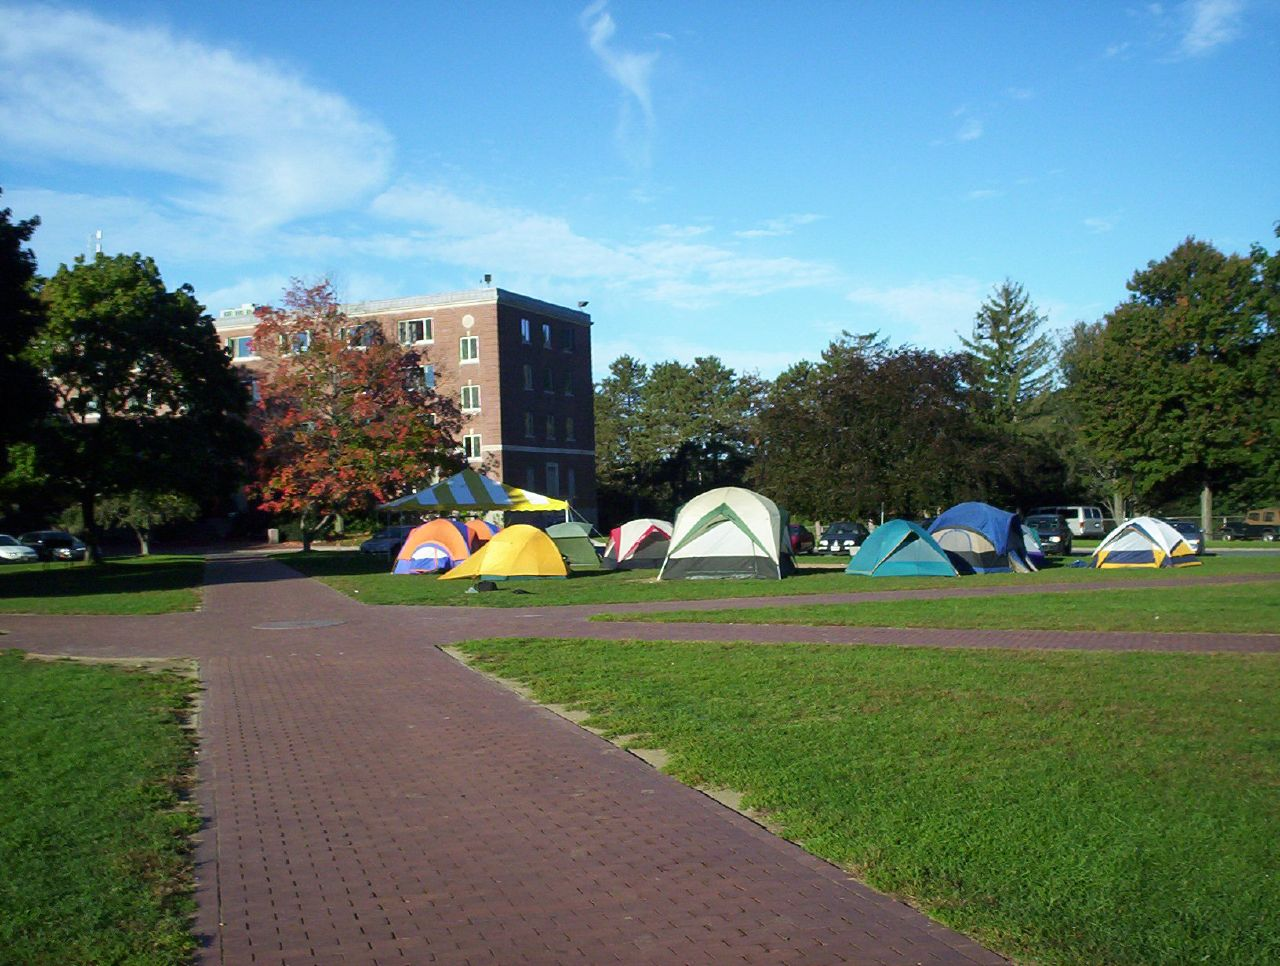 Theta Chi Camping on the Quad